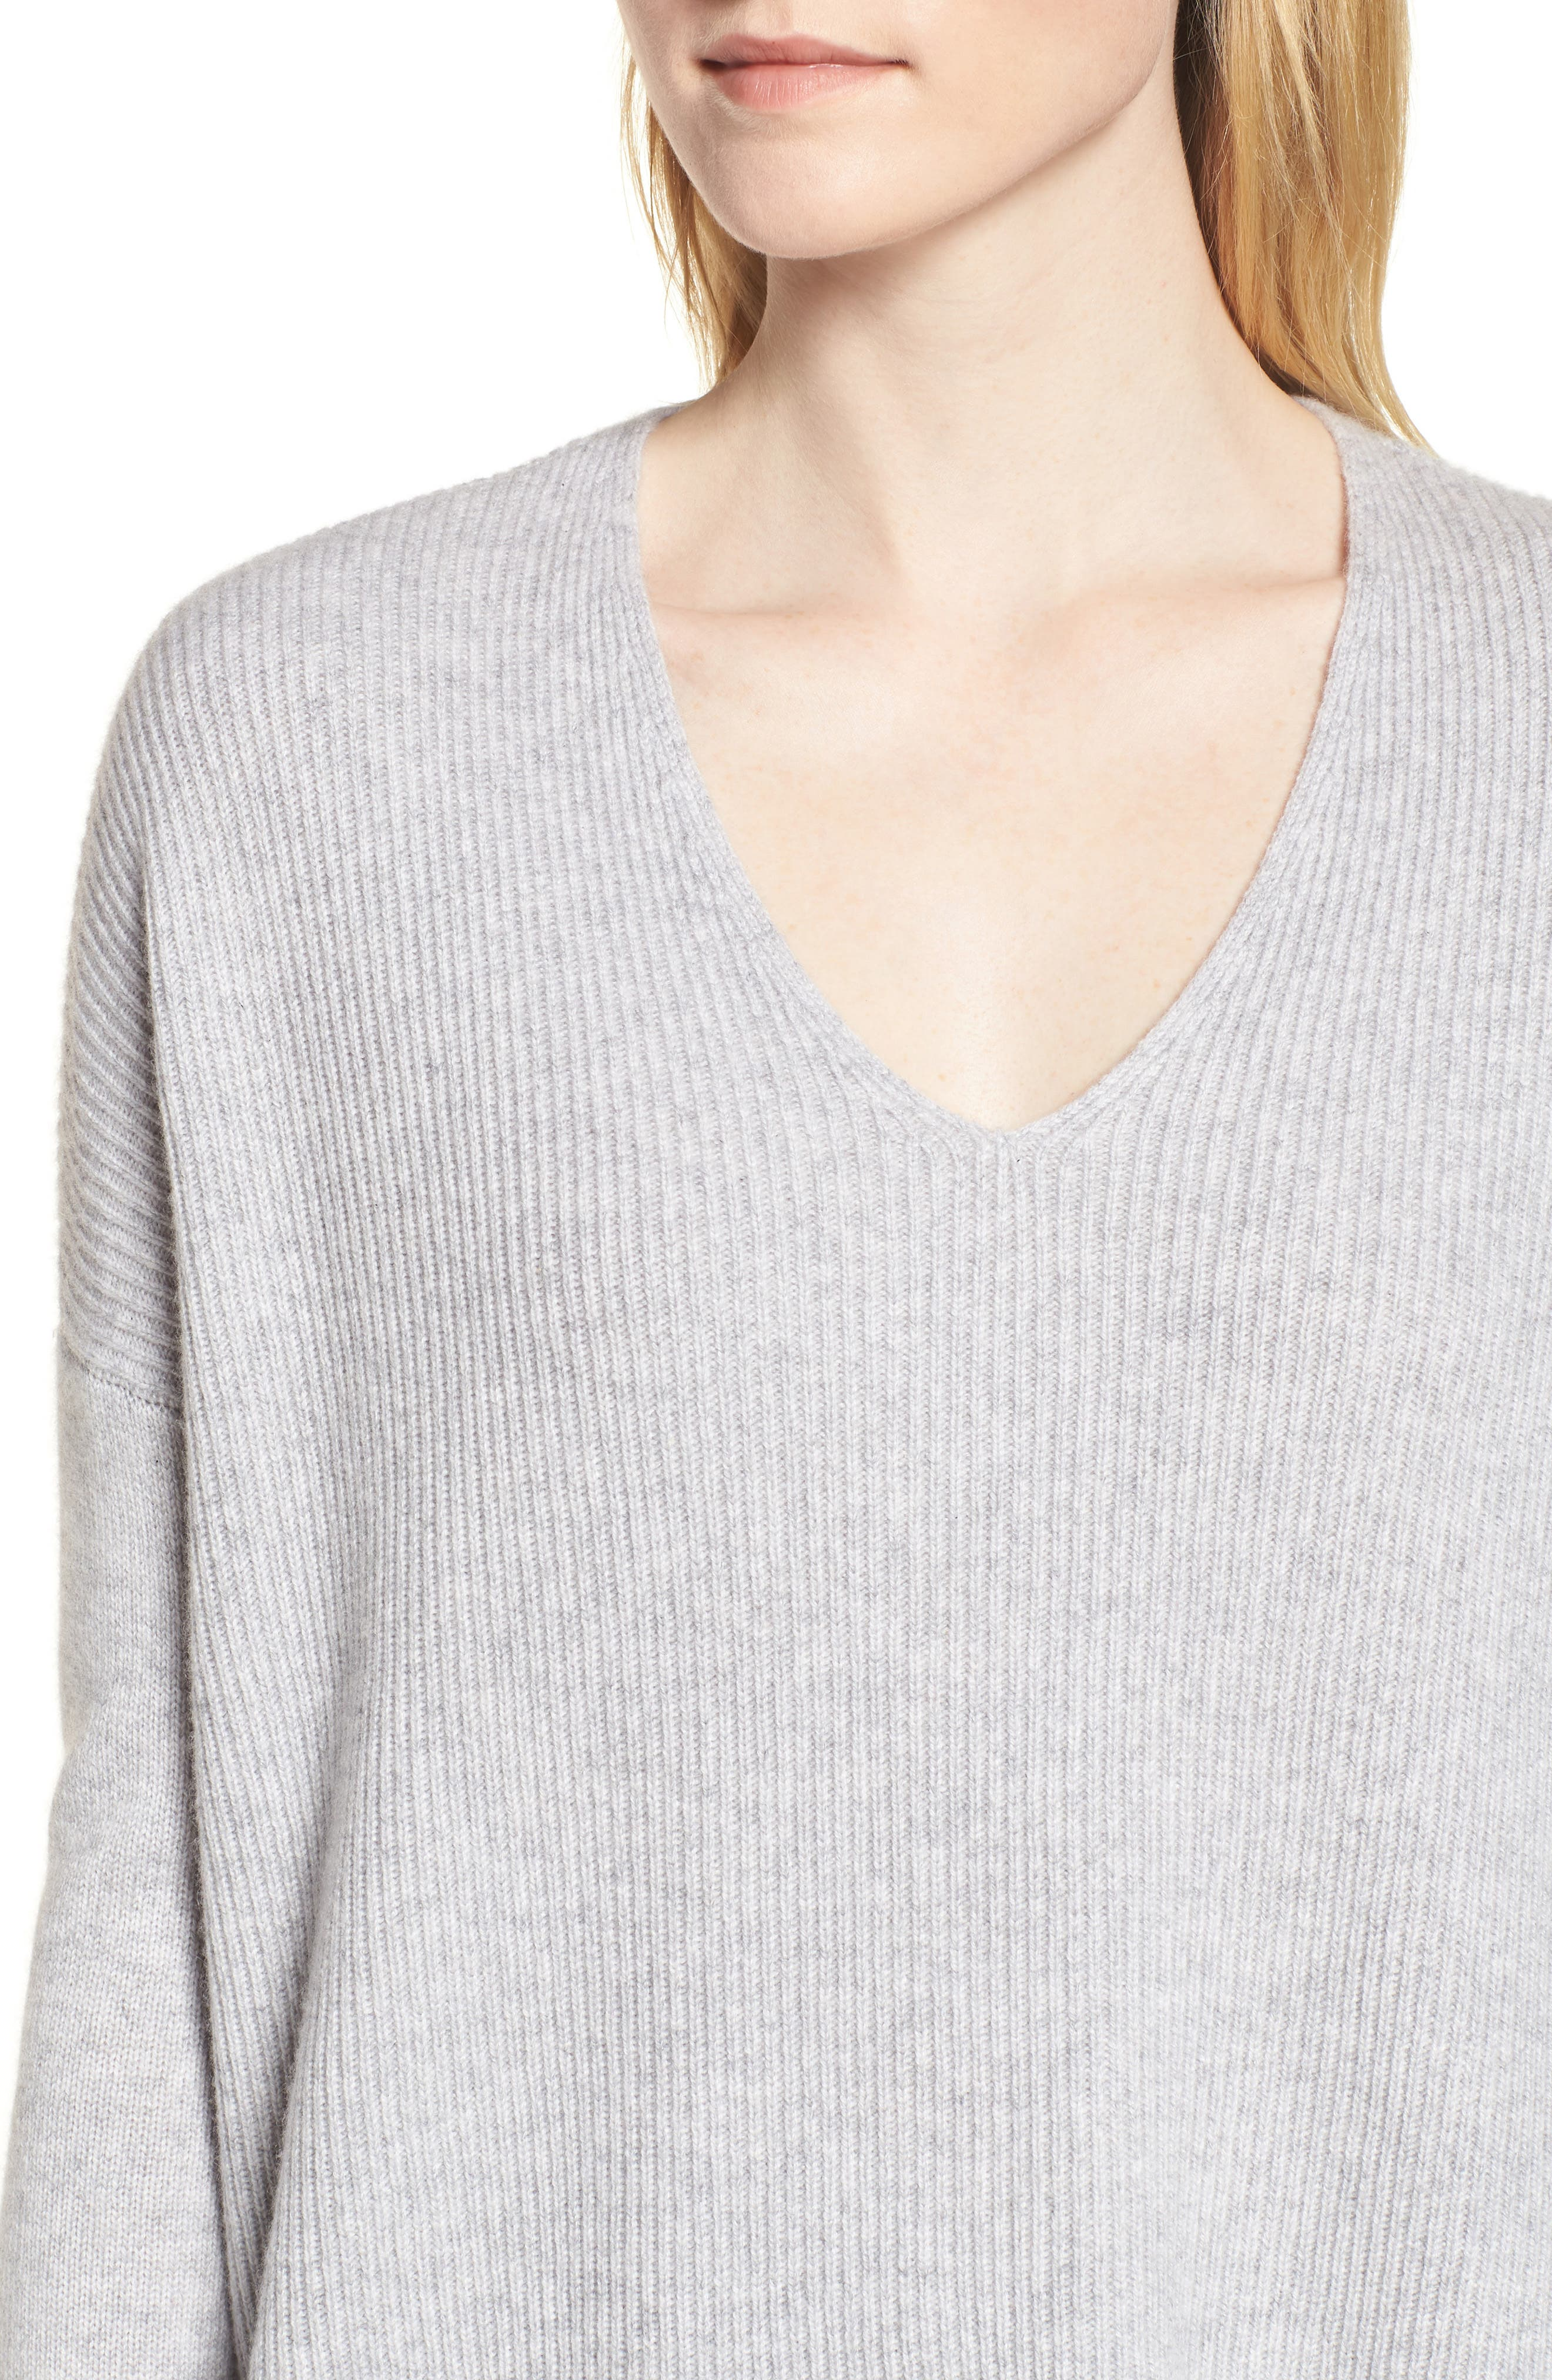 Cashmere Soft Ribbed Pullover Sweater,                             Alternate thumbnail 4, color,                             050